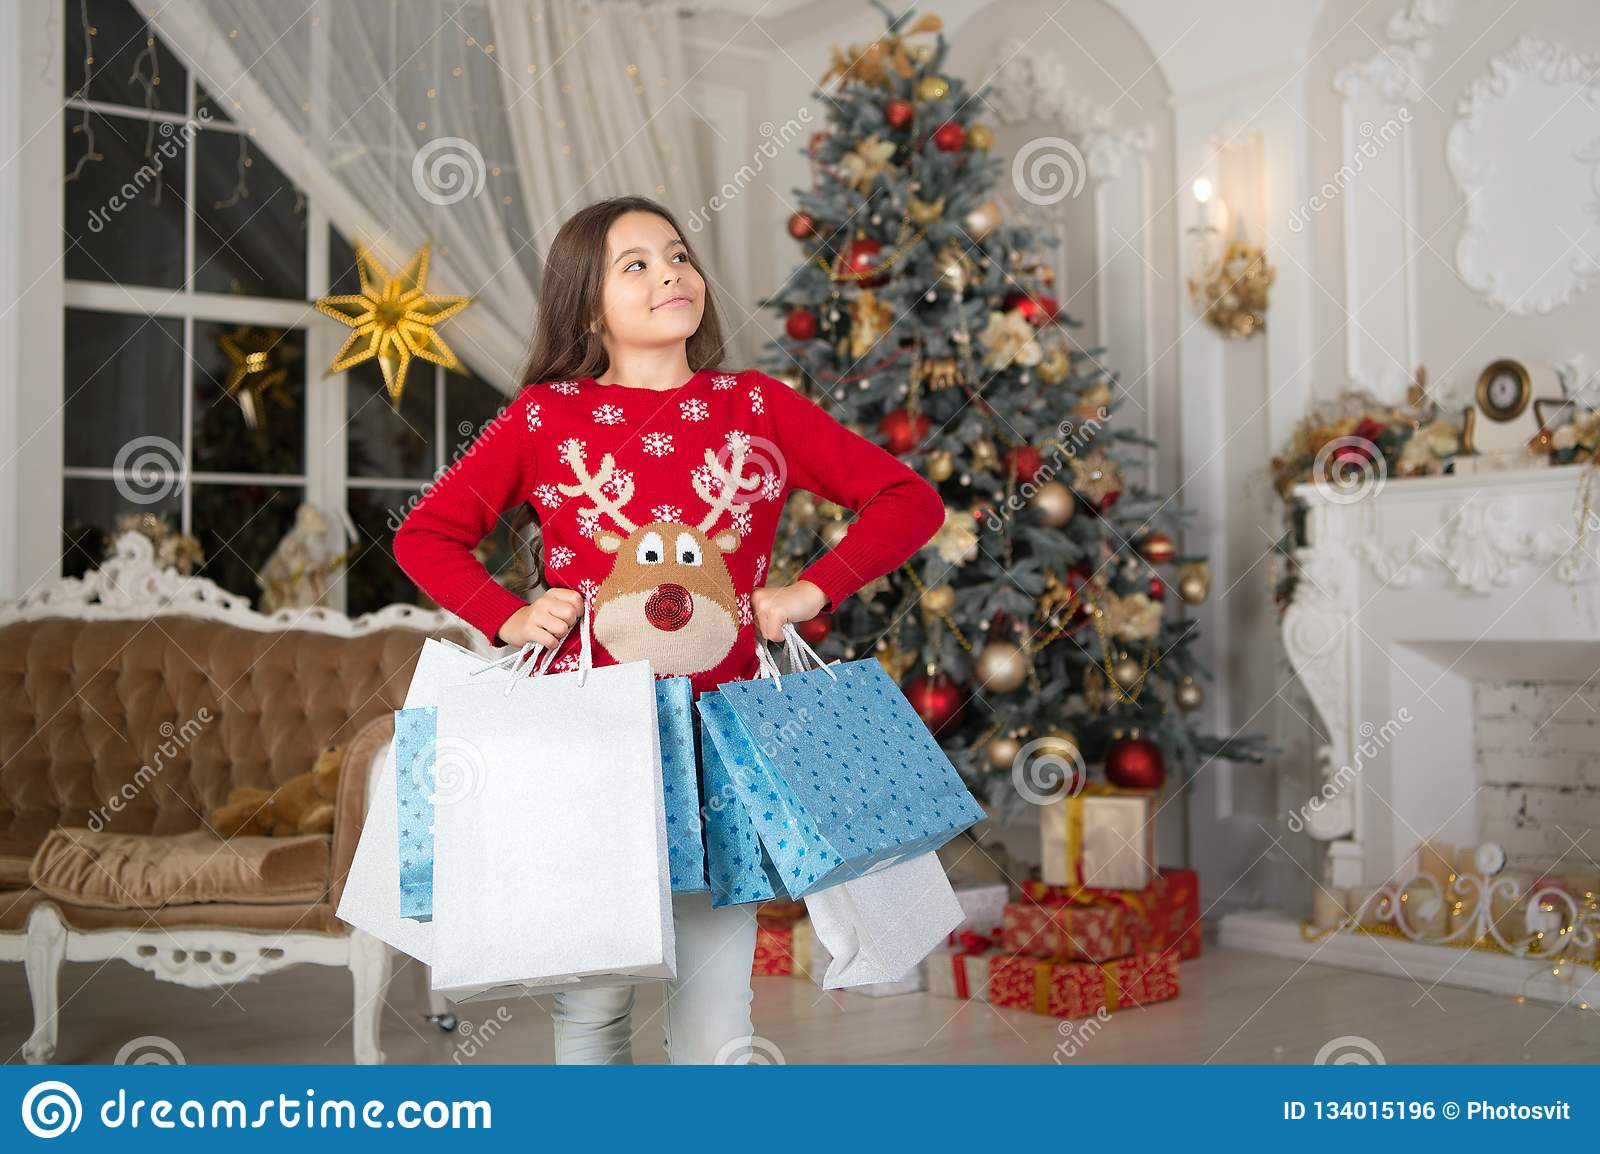 Small happy girl at christmas. Christmas. Kid enjoy the holiday. Happy new year. girl with shopping bags. morning before